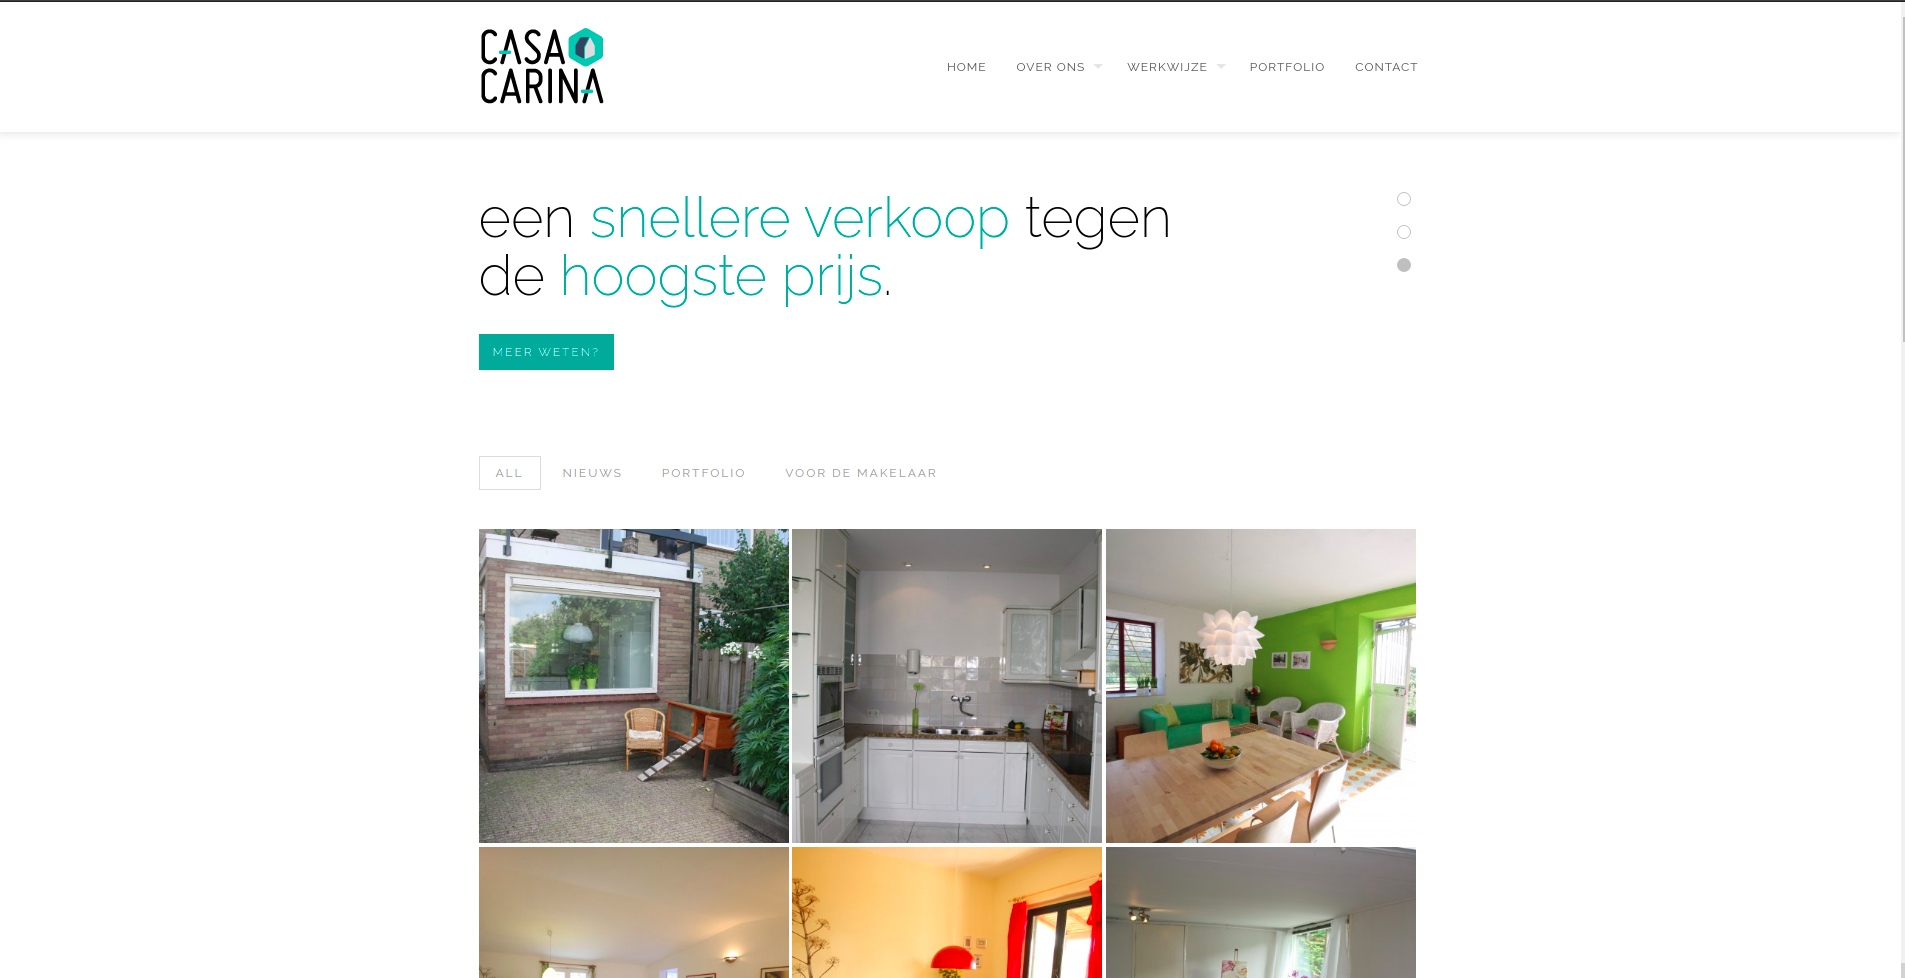 casacarina verkoopstyling site